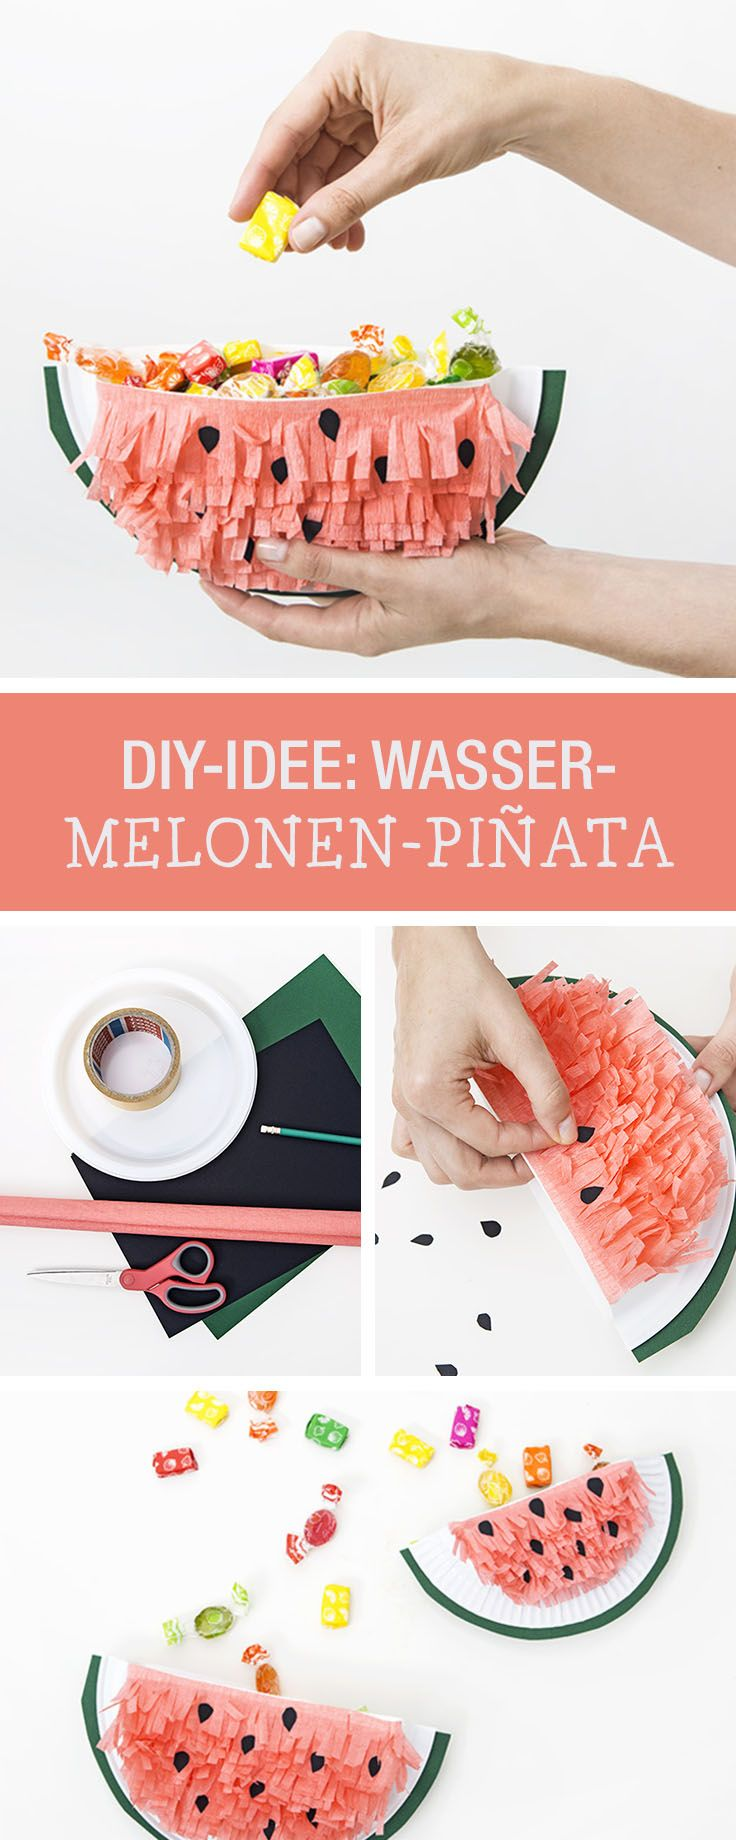 DIY-Anleitung: Melonen-Pinata für den nächsten Kindergeburtstag basteln, Deko und Partyspiel / DIY tutorial: crafting watermelon pinata for the next children's birthday party, decor and game via DaWanda.com